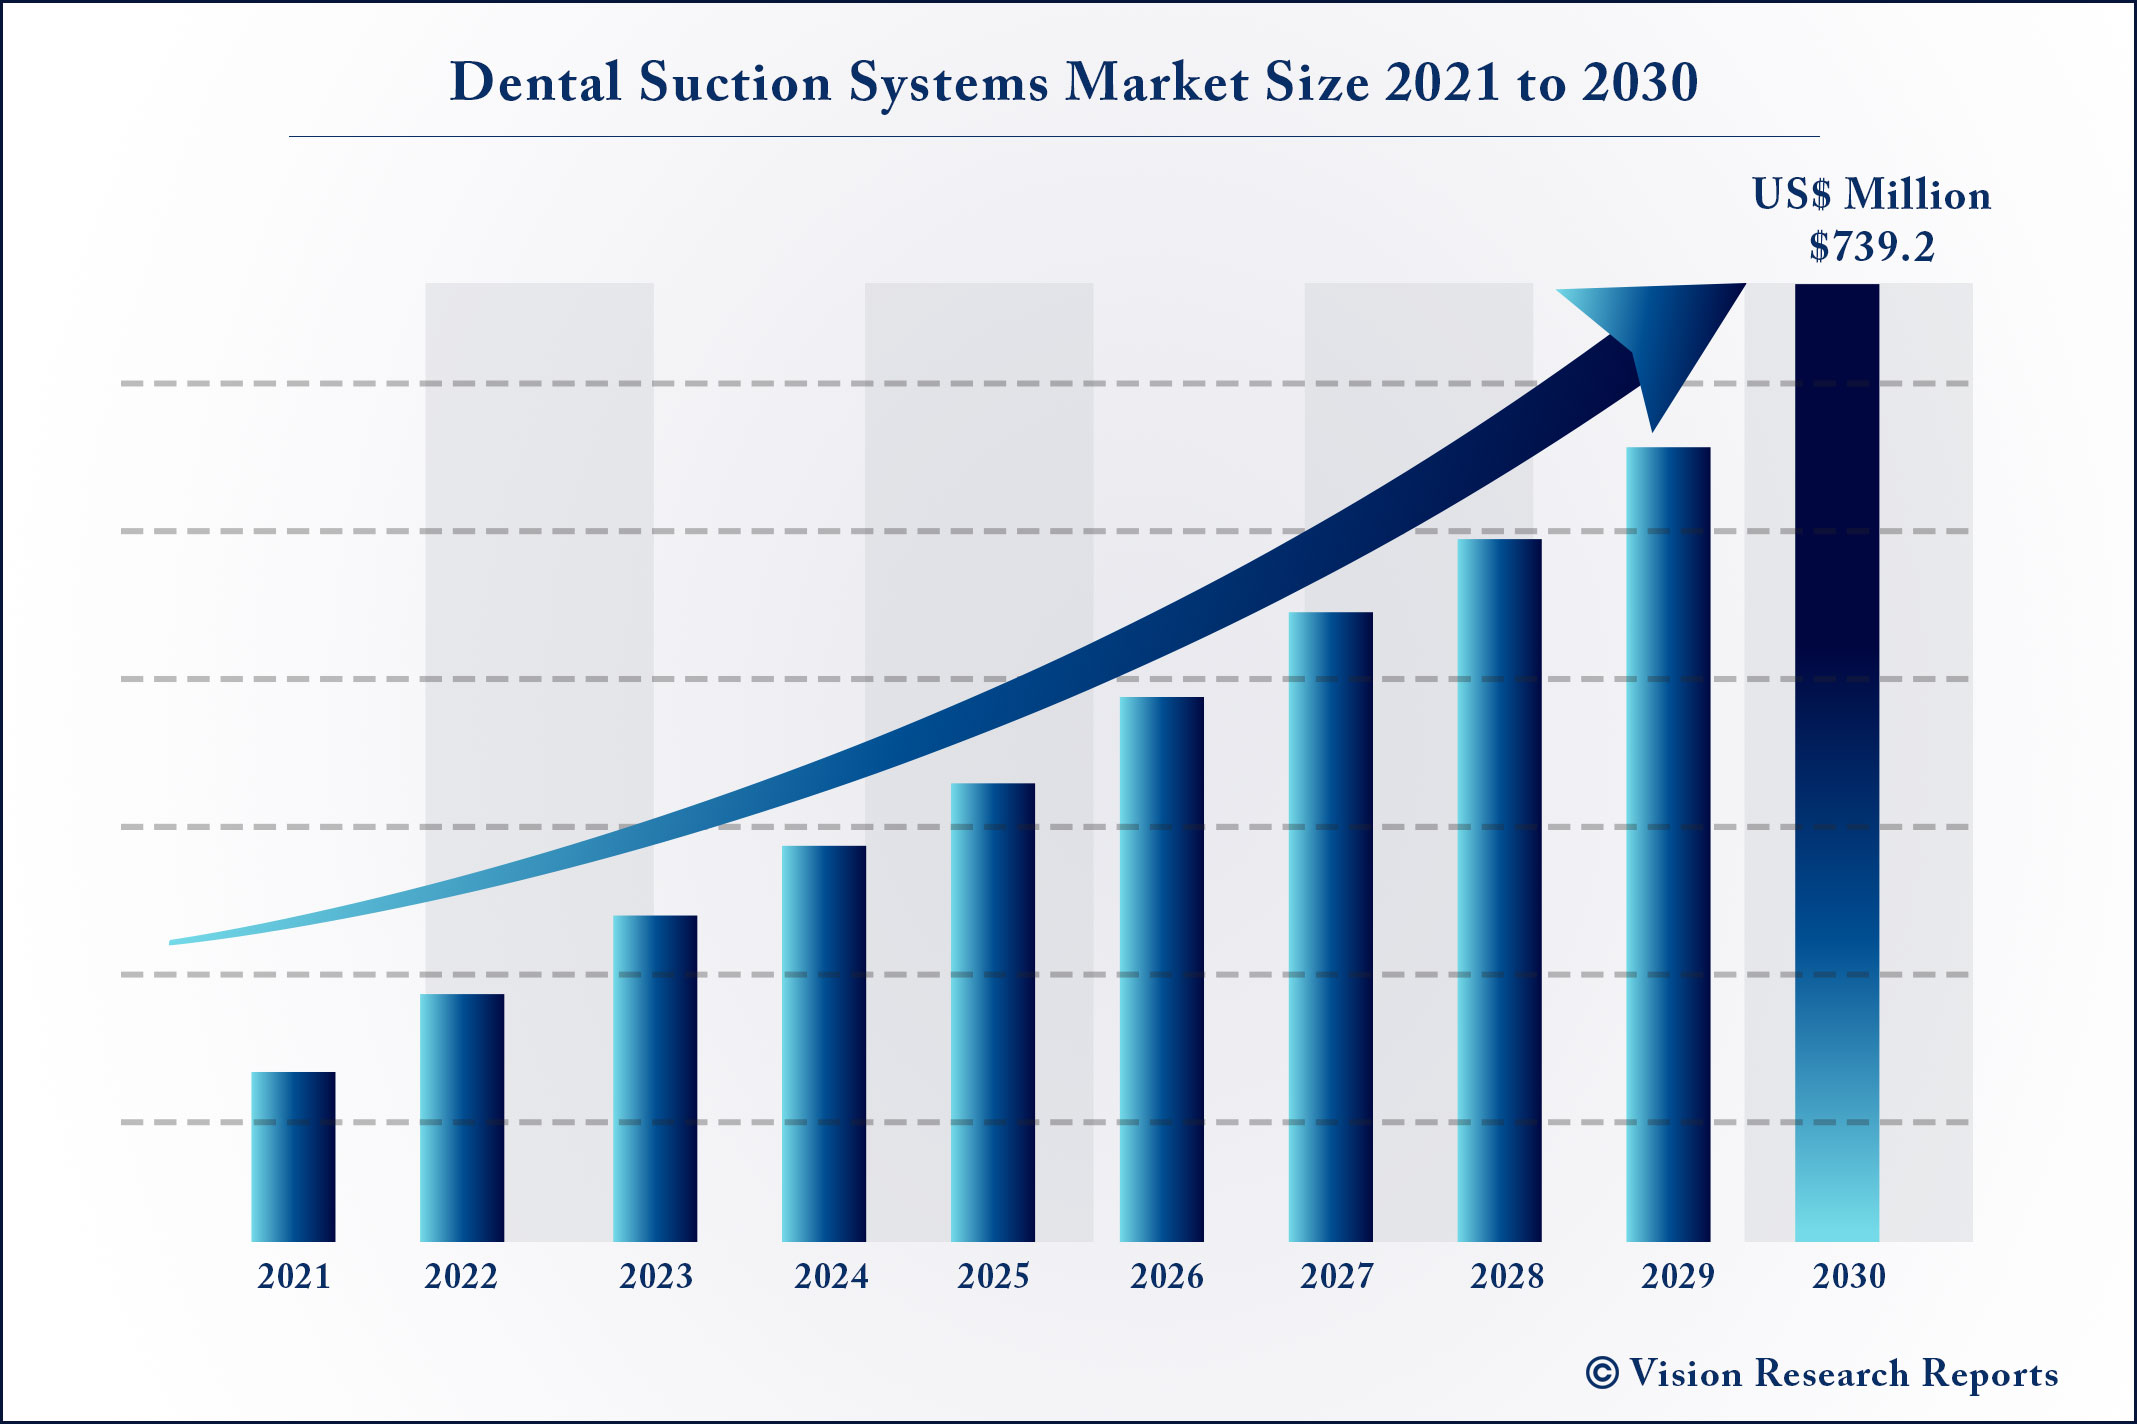 Dental Suction Systems Market Size 2021 to 2030